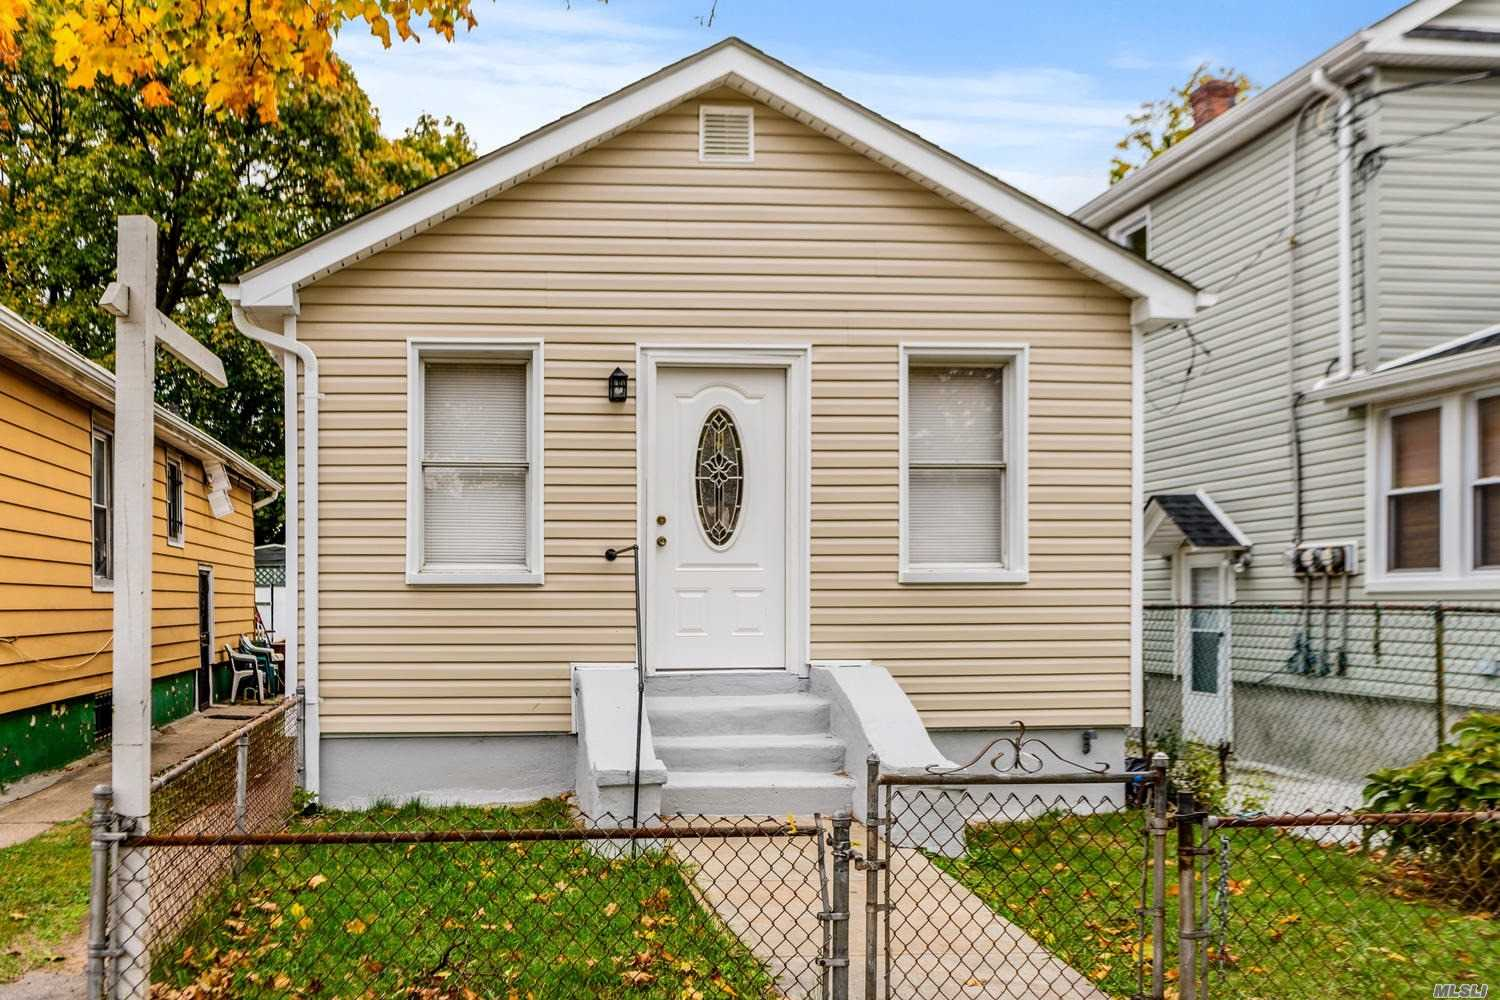 Great 1 family House , 3 bedrooms, Living room Kitchen and full bathroom. Full finished basement , share driveway,  Completely renovated new kitchen, bathroom